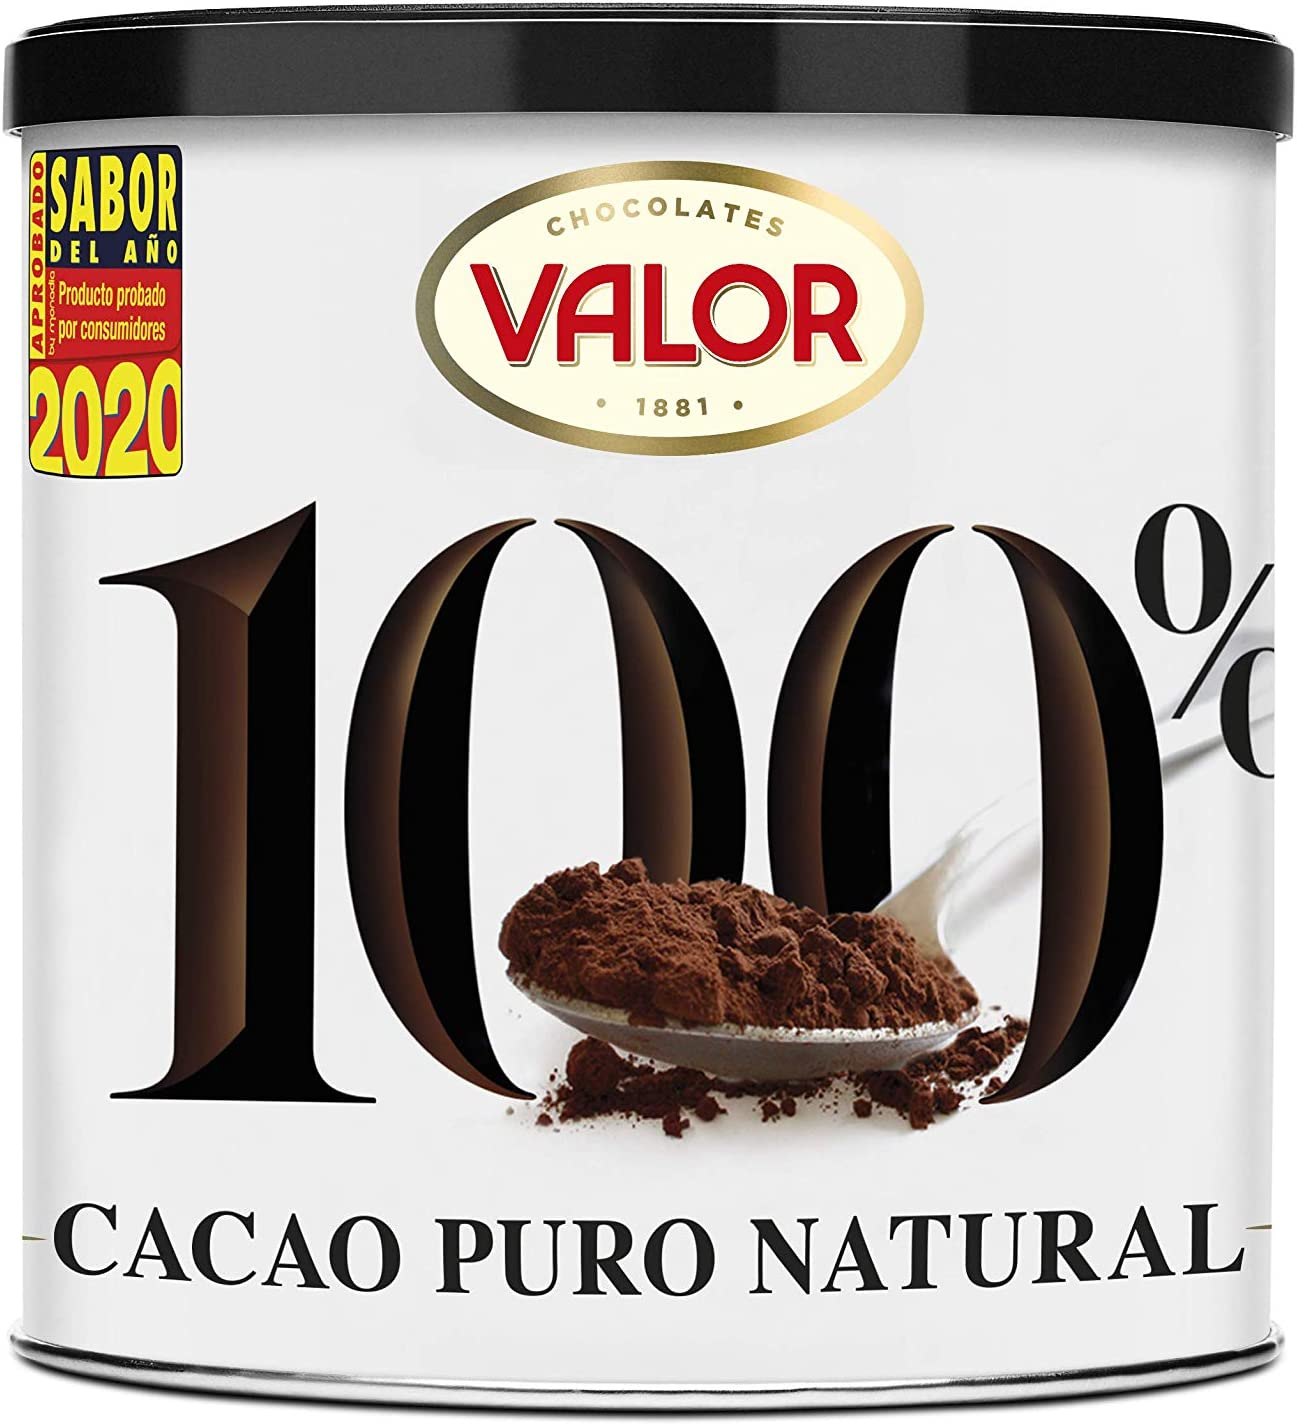 Chocolates Valor, Cacao Puro Natural 100% 250 g 1 unidad